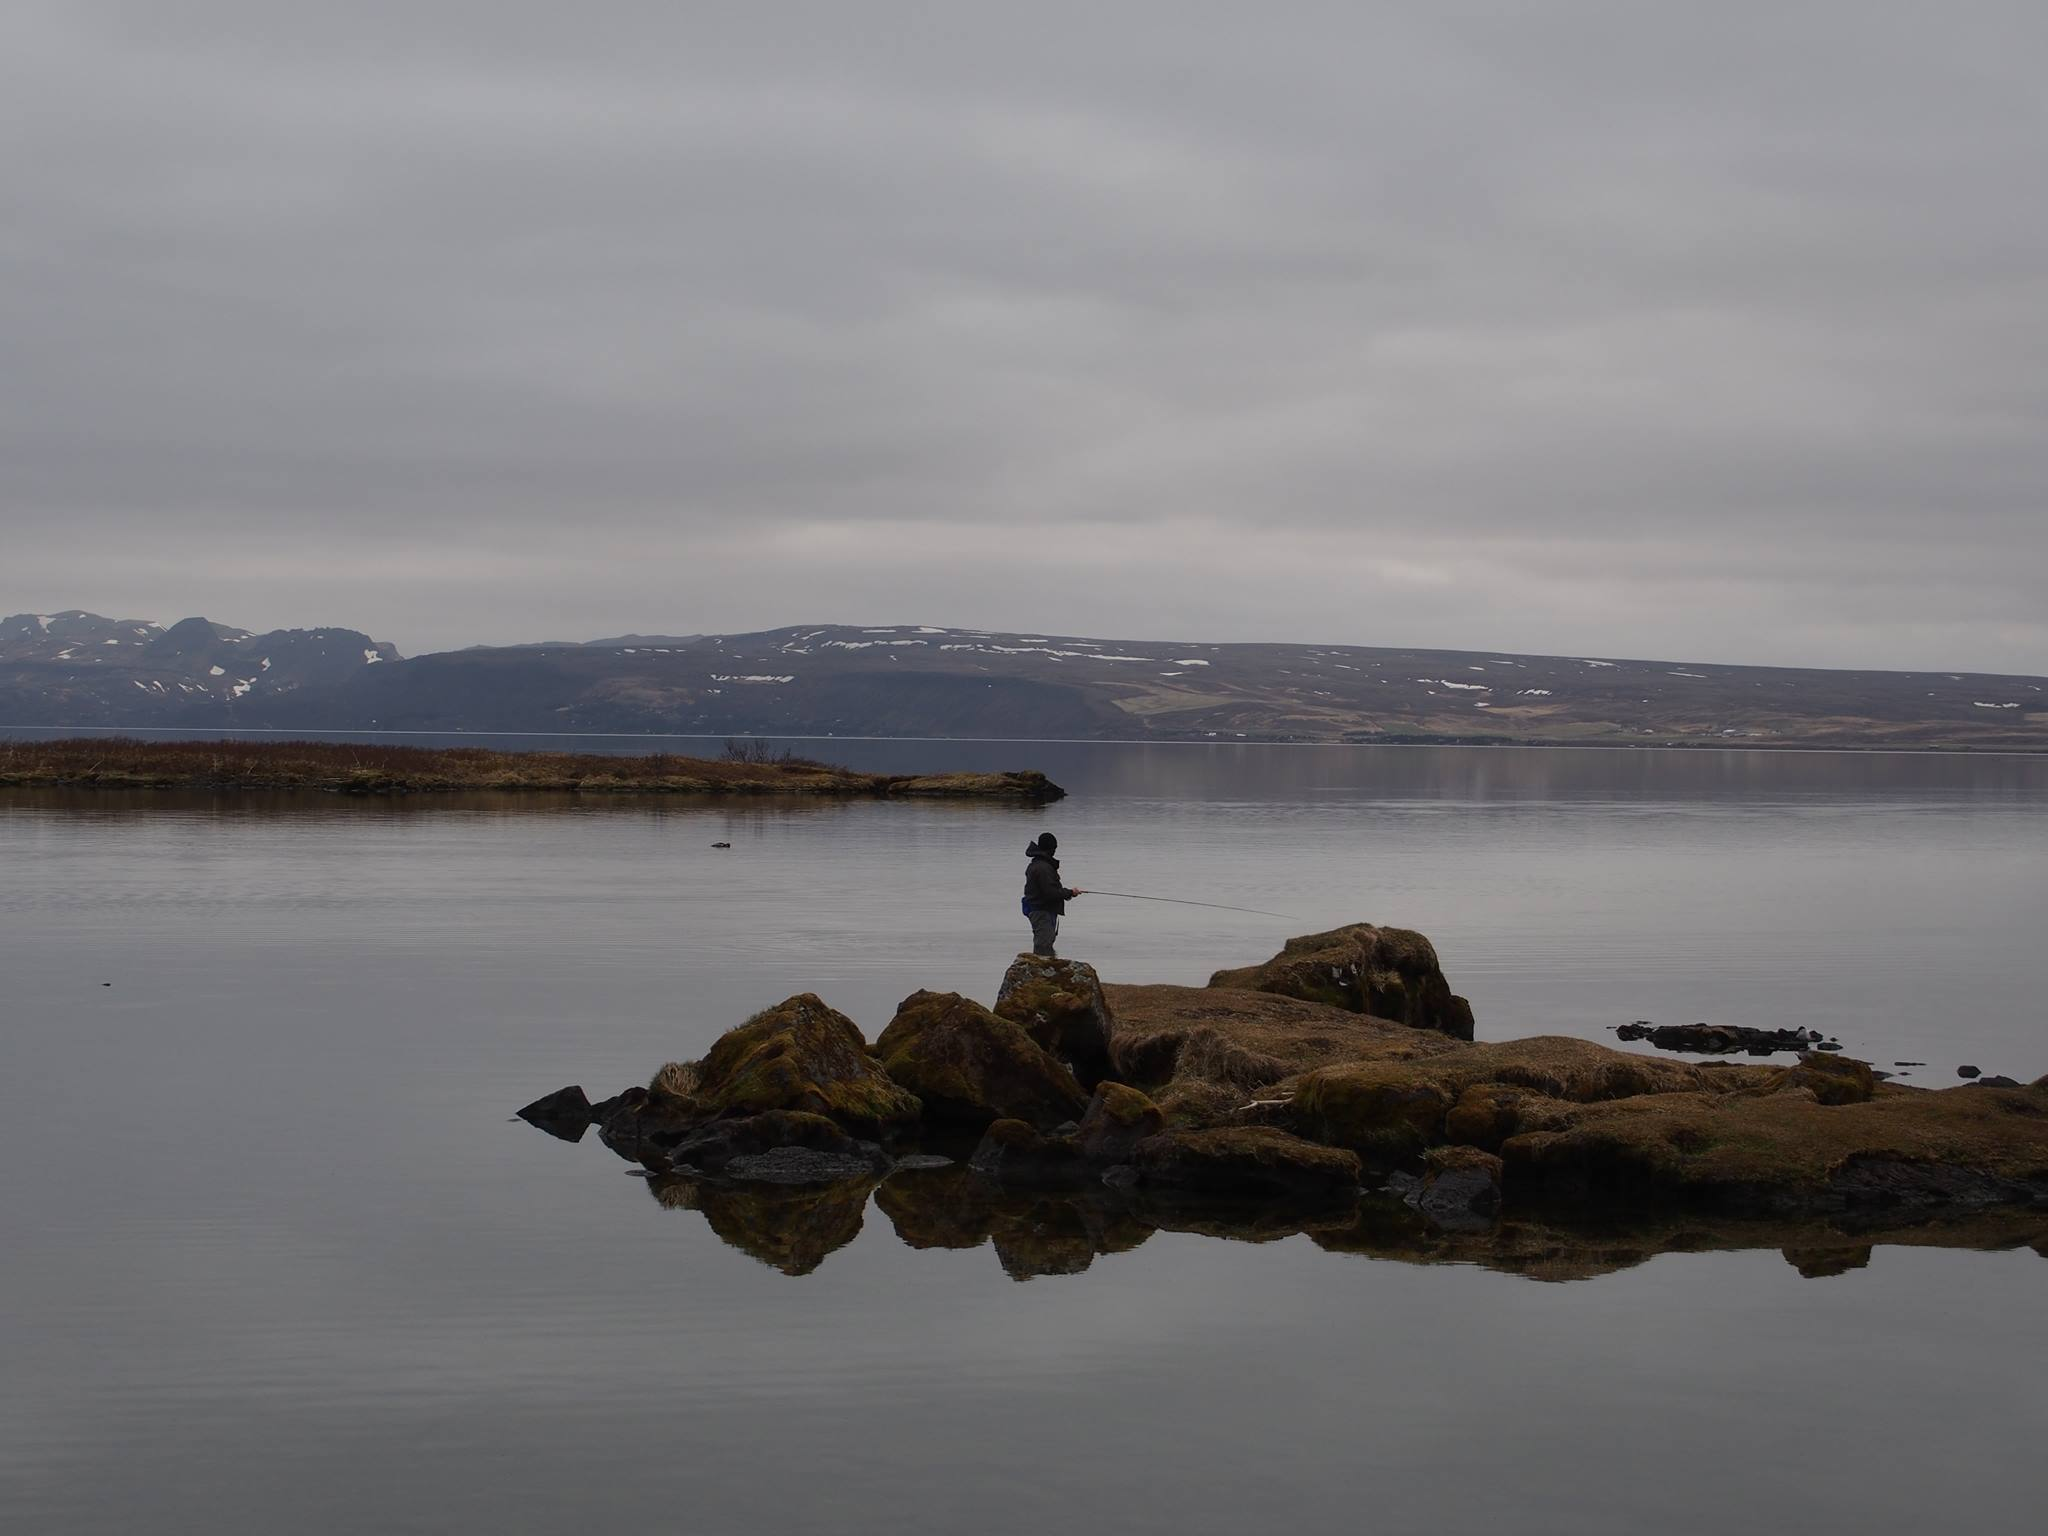 Fin morgen i Thingvellir